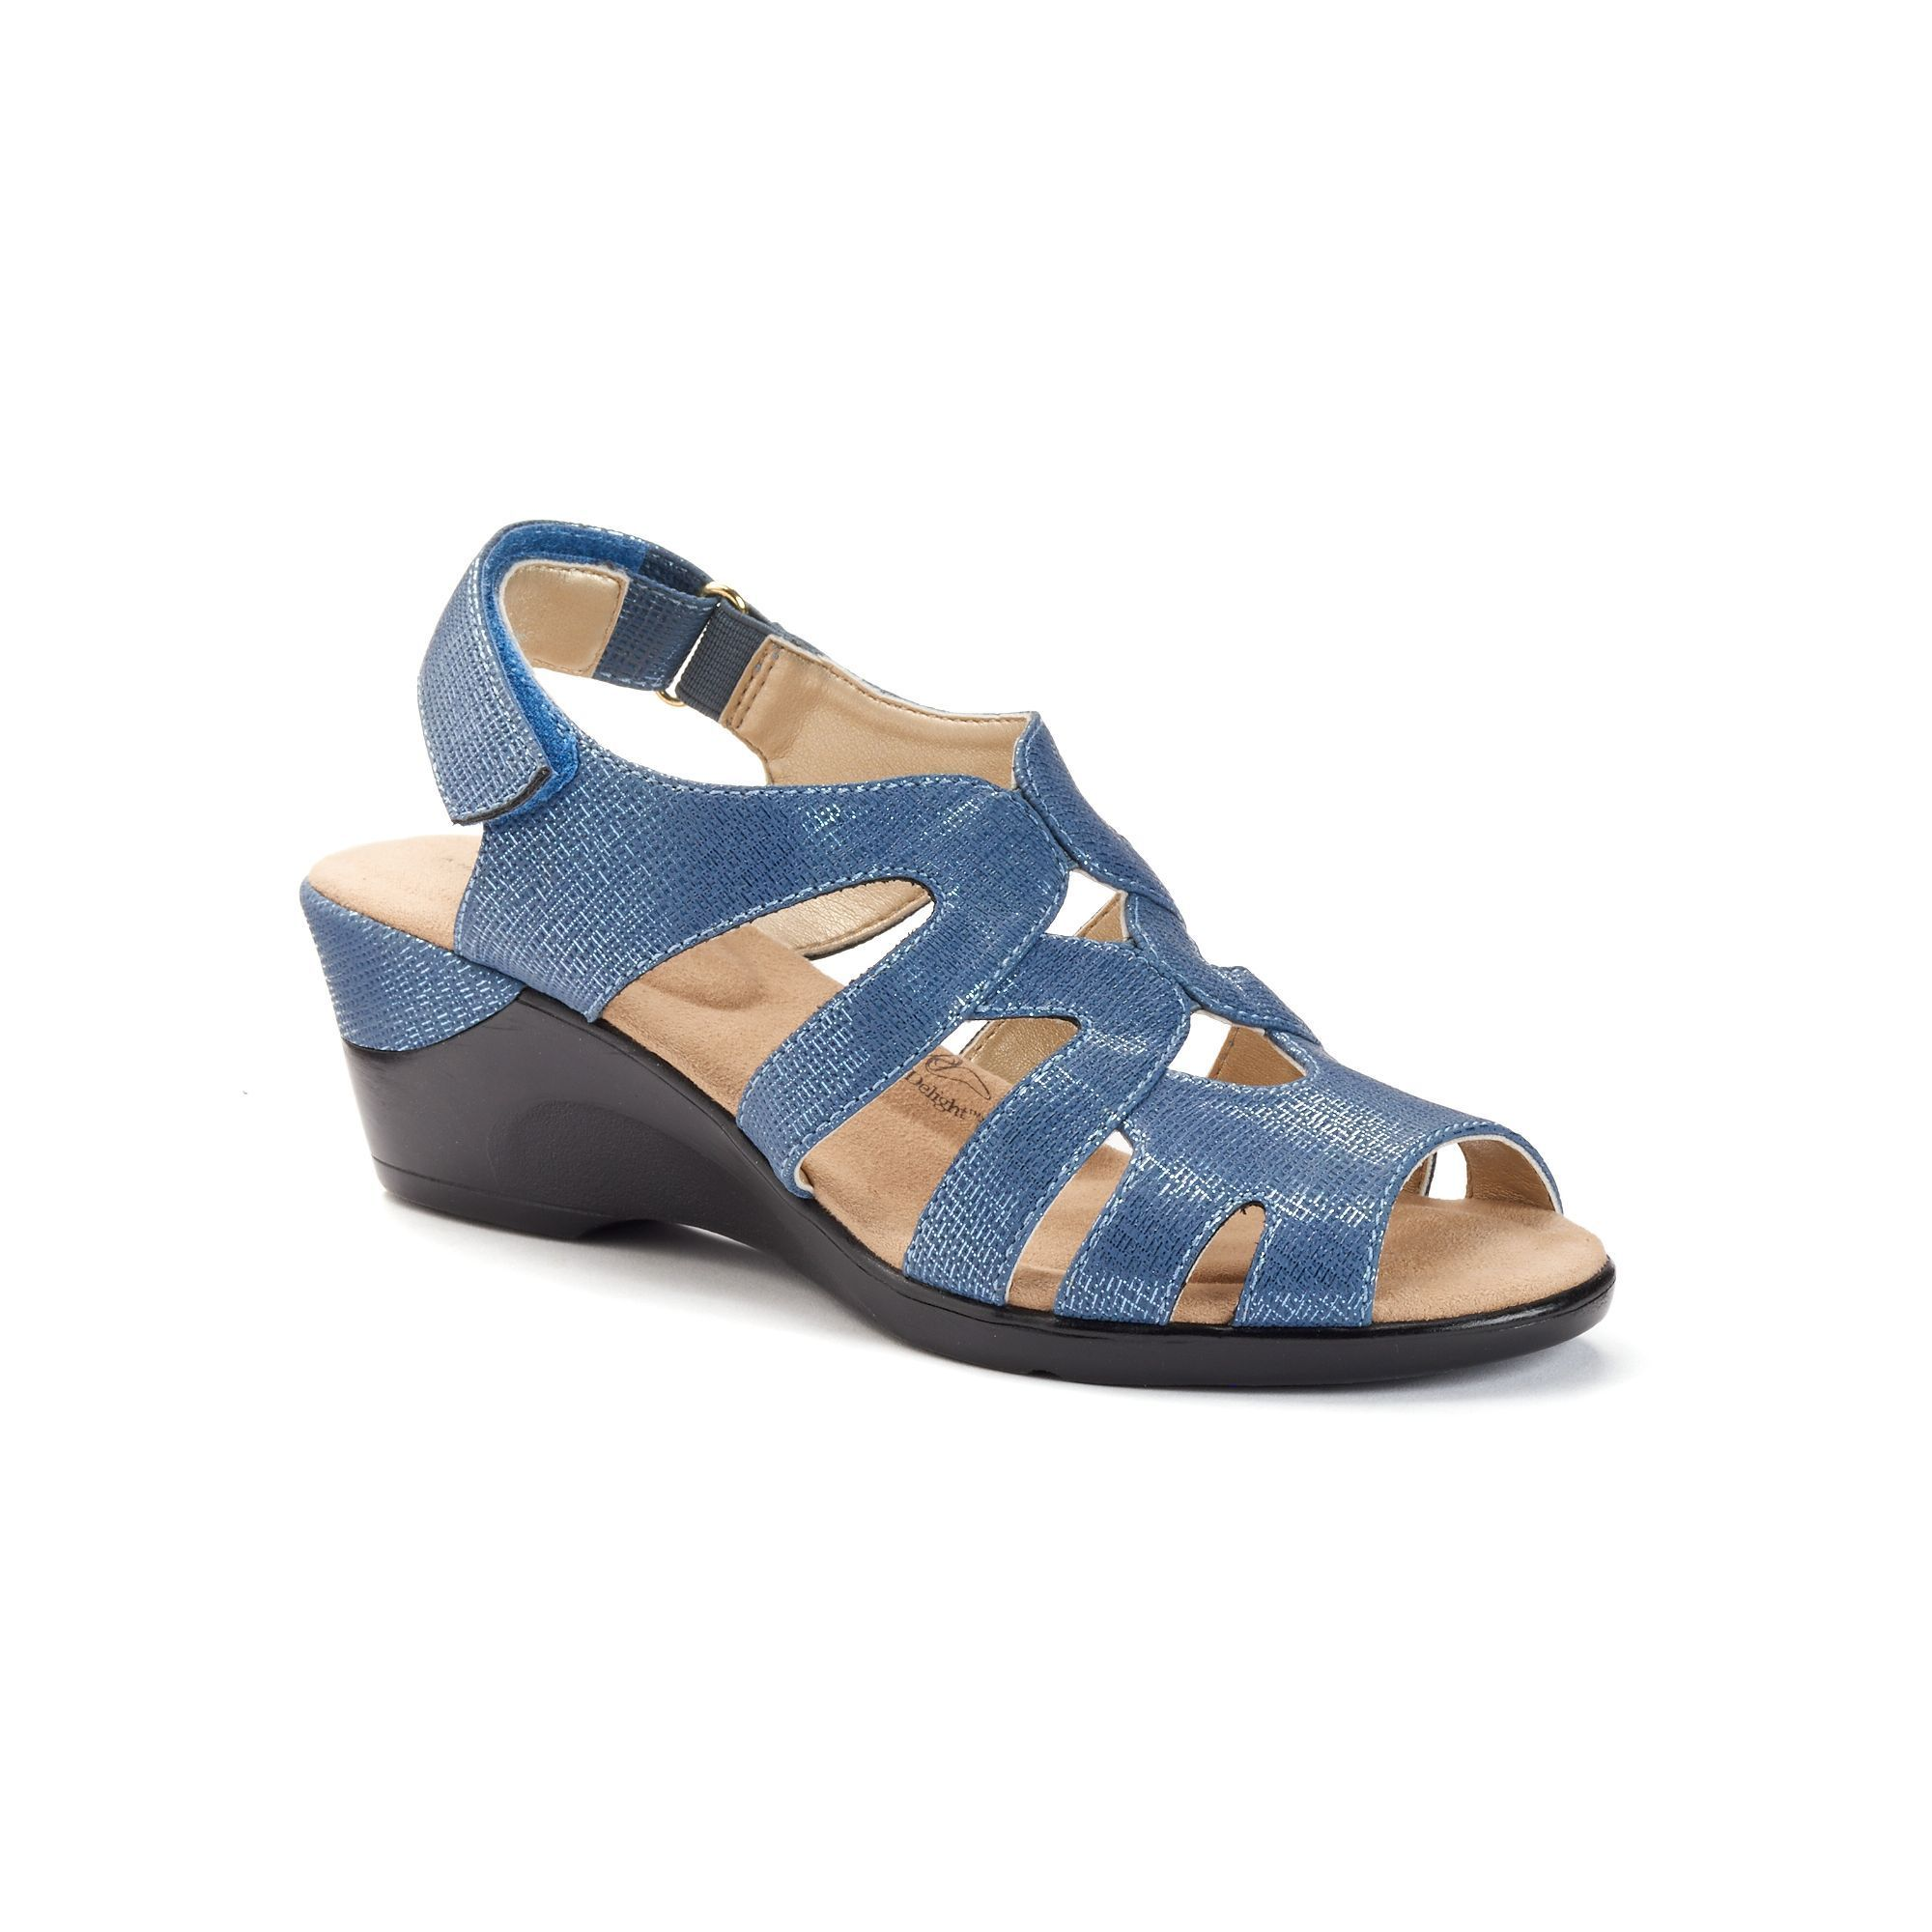 Womens sandals in size 12 - Soft Style By Hush Puppies Patsie Women S Wedge Sandals Size Medium 12 Blue